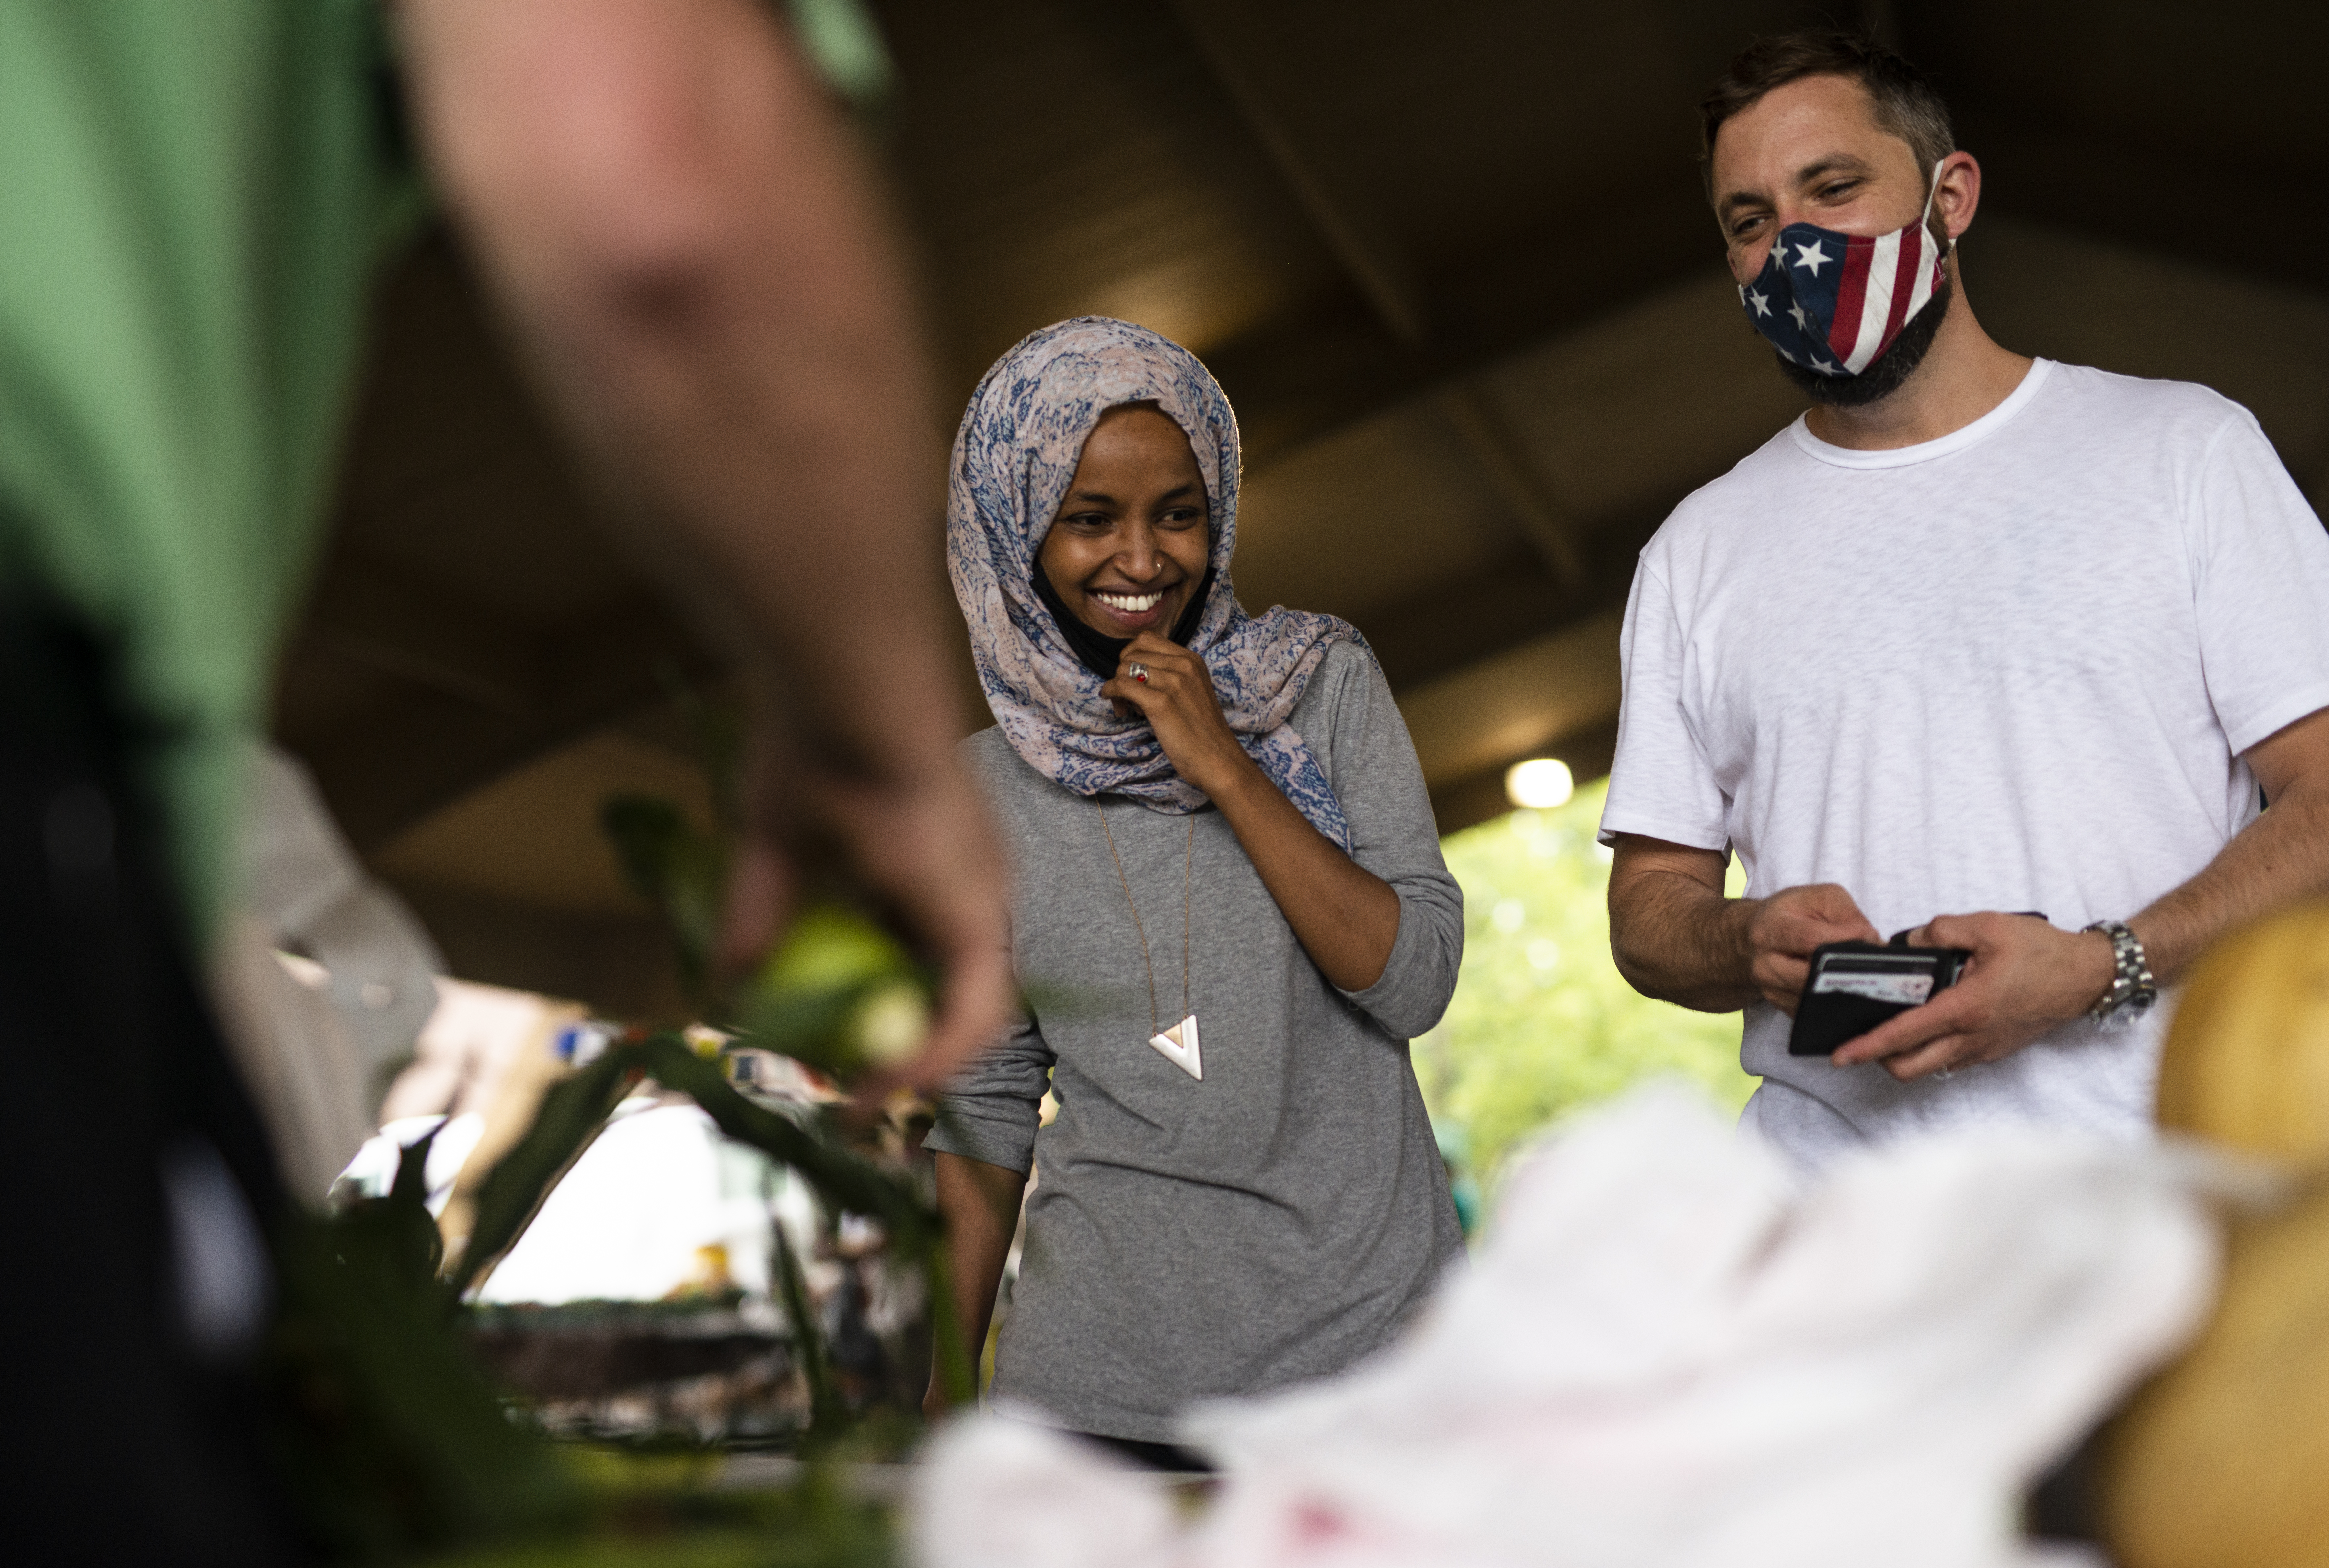 Ilhan Omar  campaigns with her husband Tim Mynett at the Richfield Farmers Market on 8 August 2020 in Richfield, Minnesota